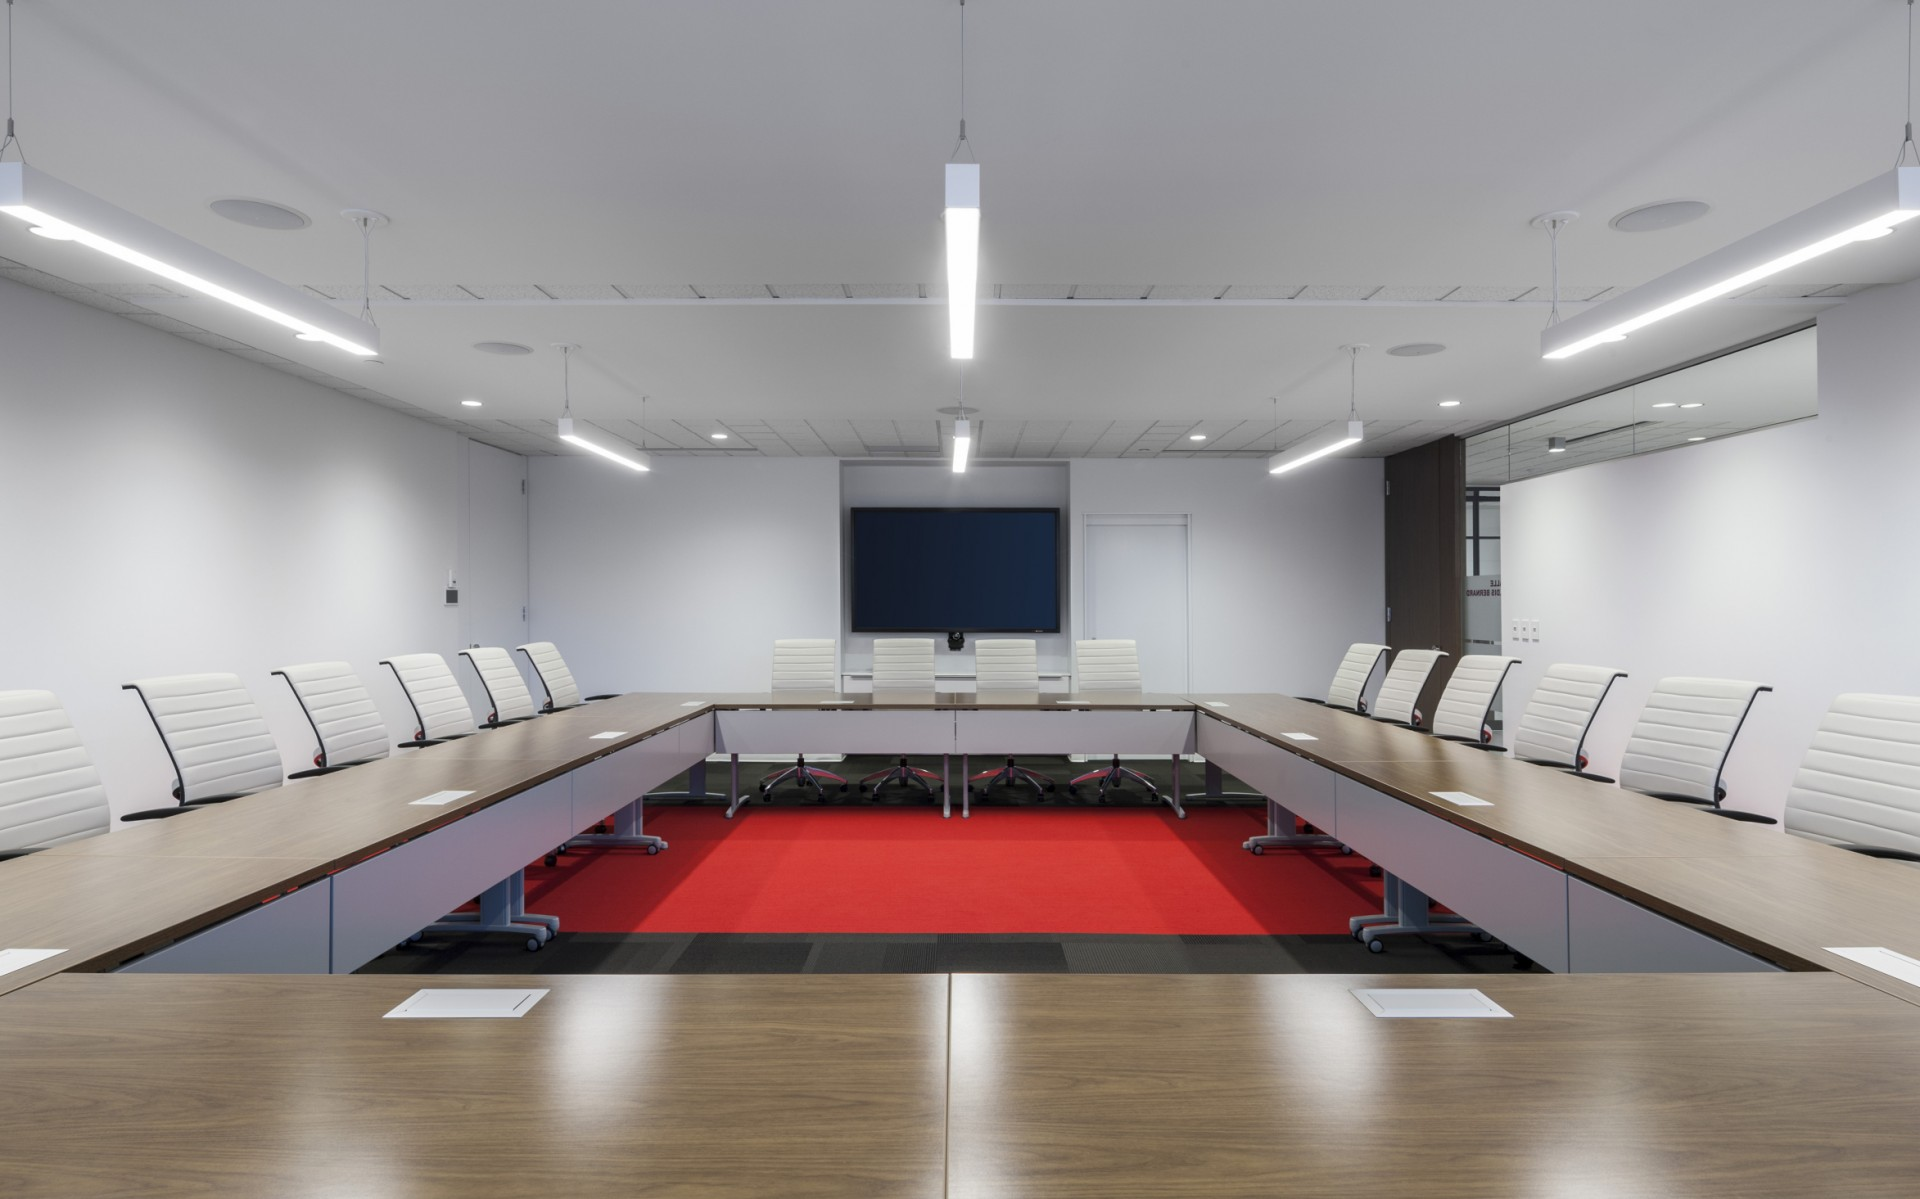 The Ordre des Dentistes du Québec used Lumenpulse LED luminaires to increase the flexibility of their office lighting, while cutting maintenance costs and energy consumption.